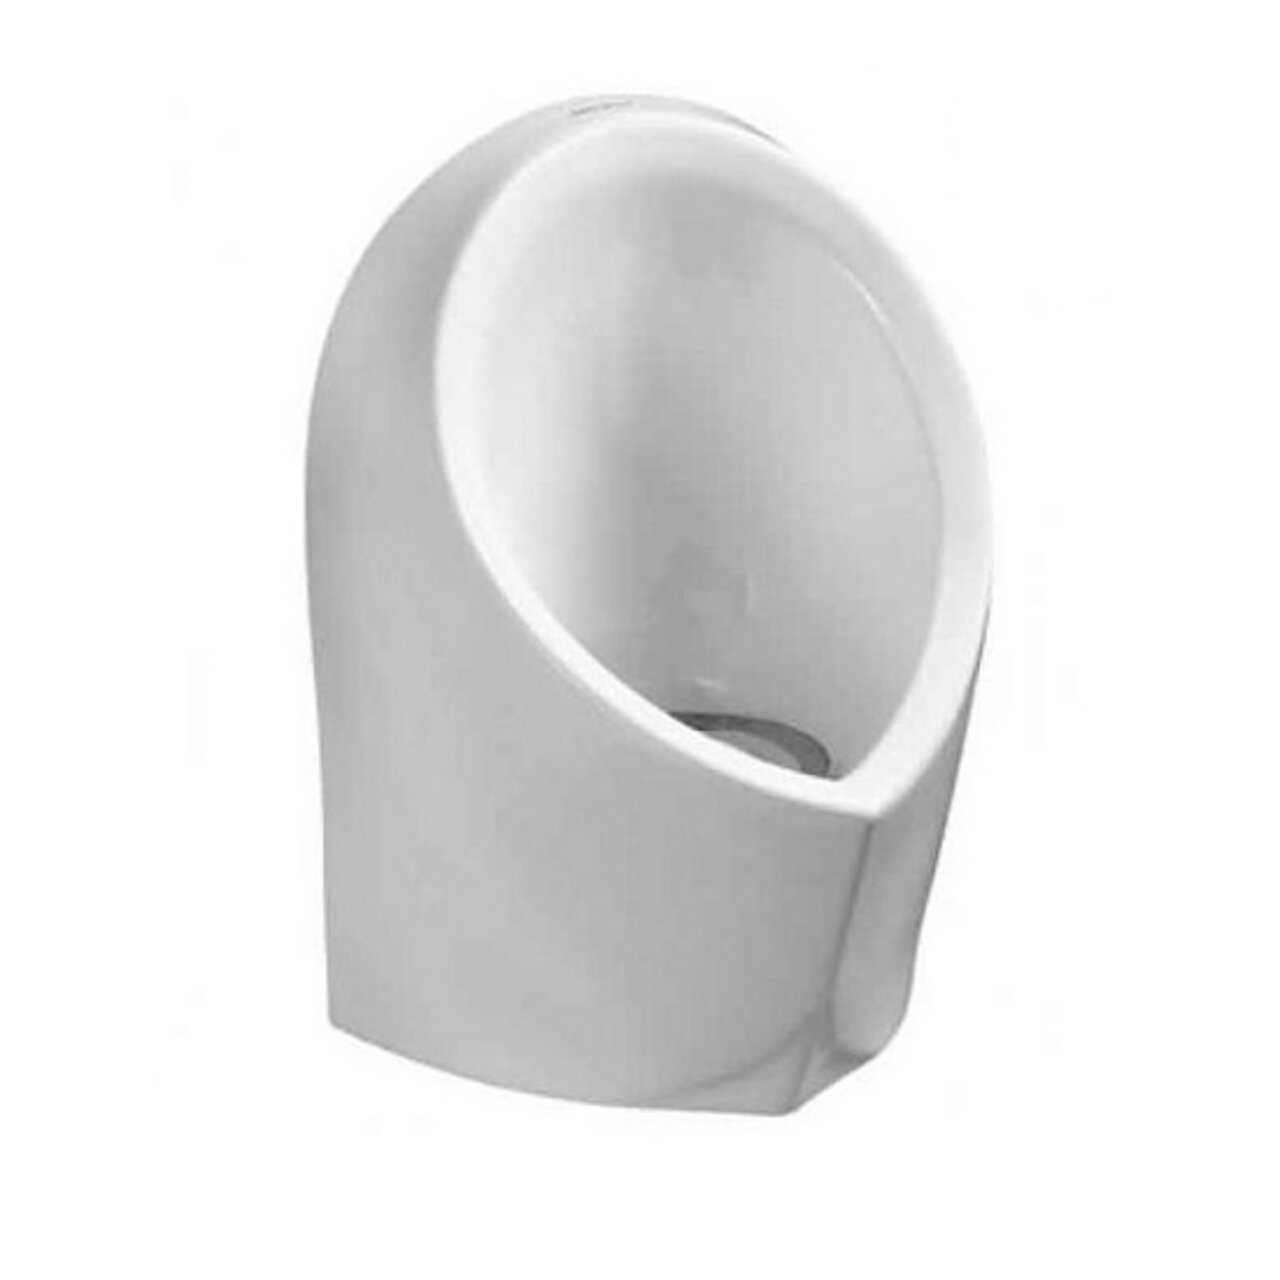 American Standard 6155.100.020 Urinal, White